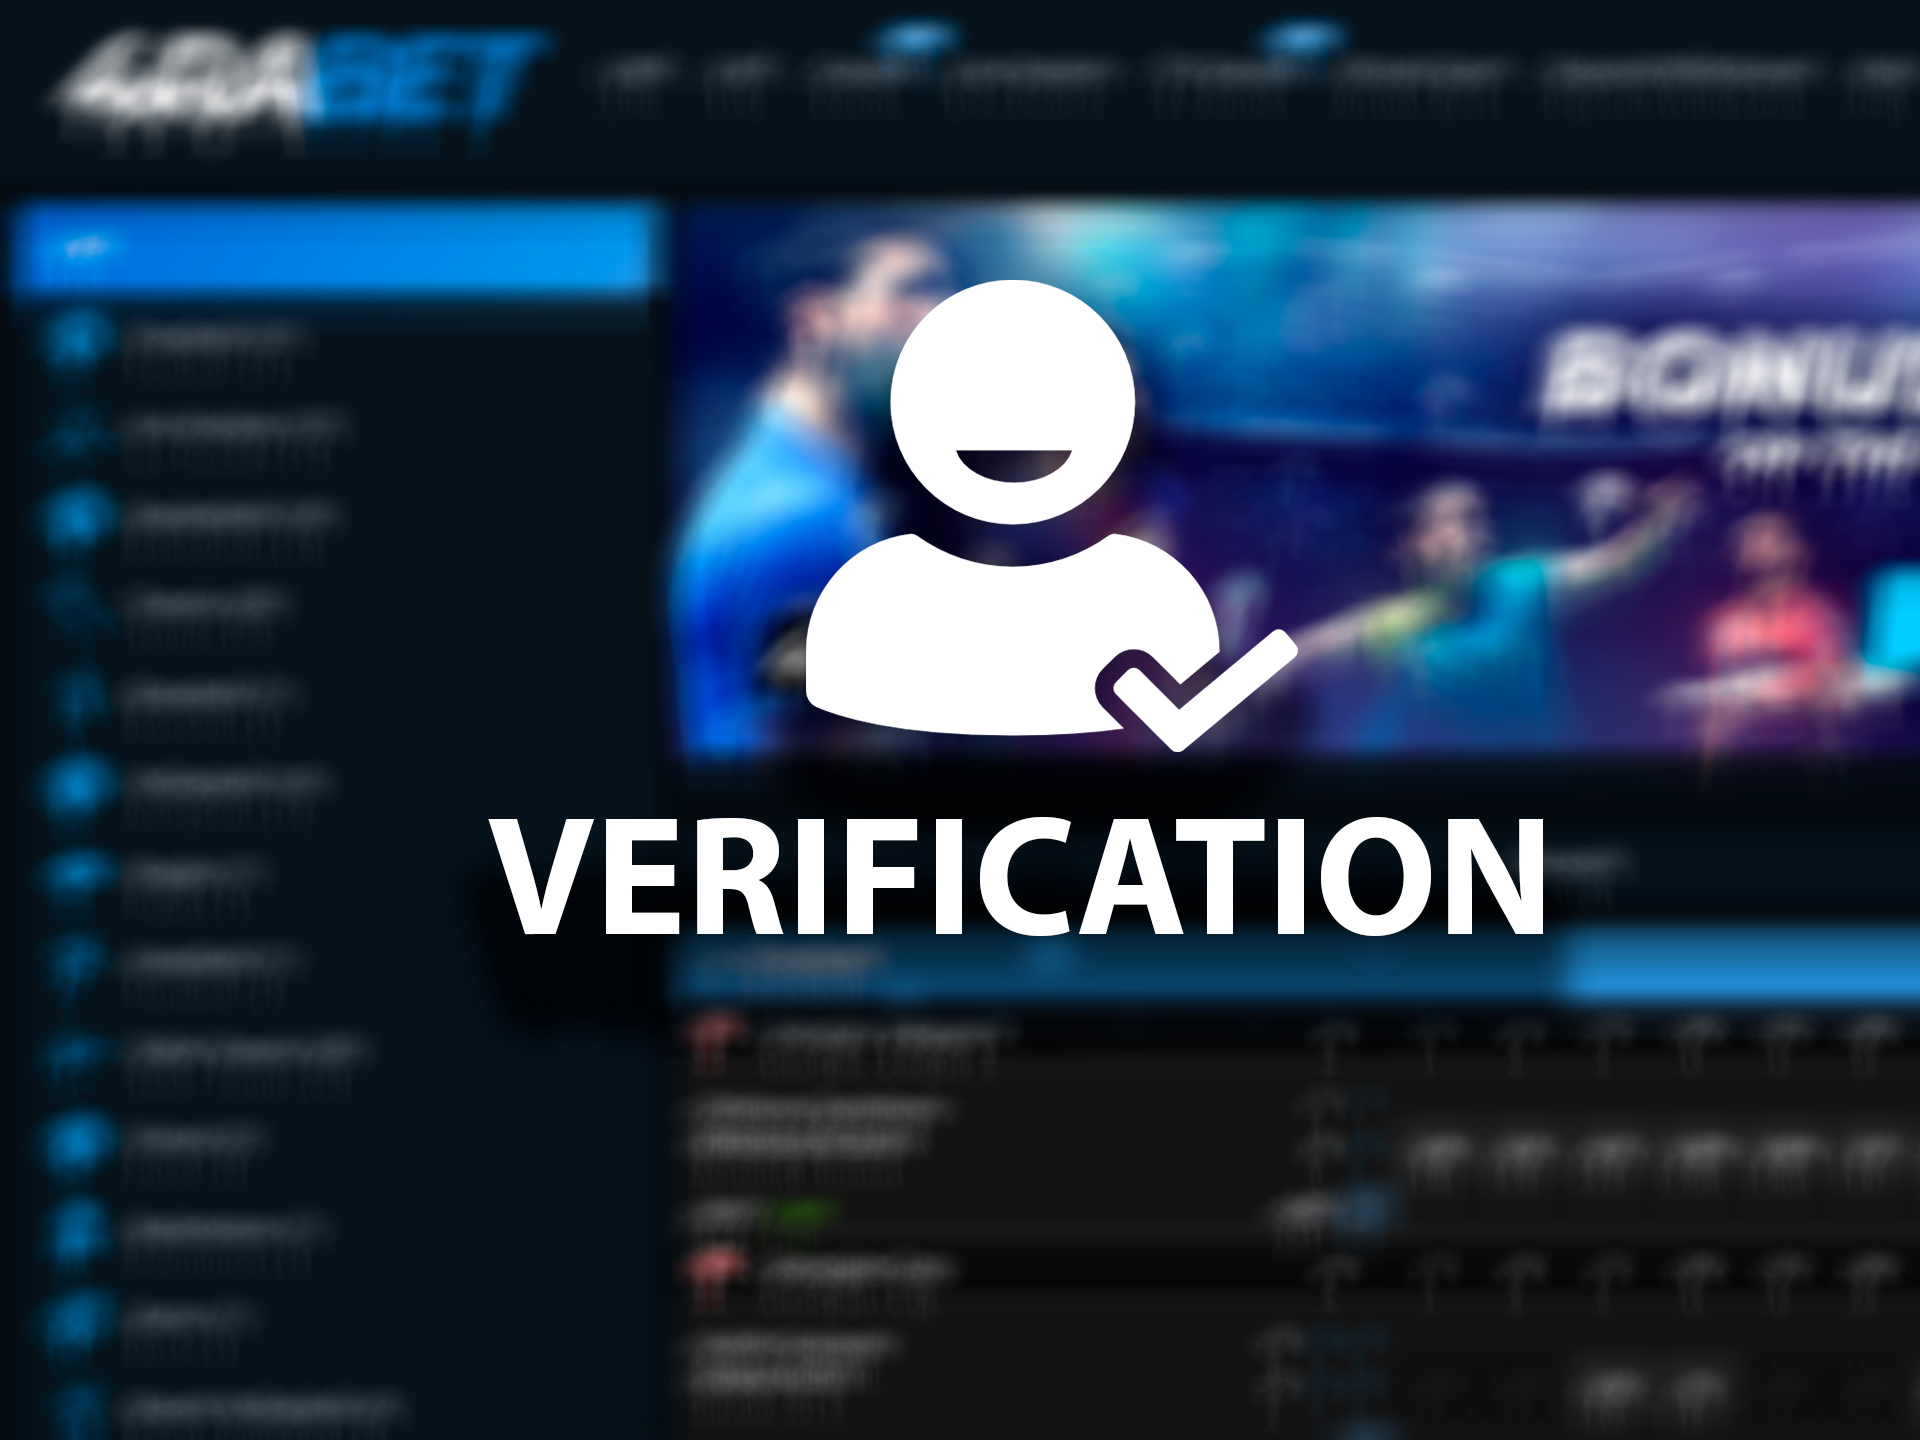 Only verified players can play on money and withdraw winnings.